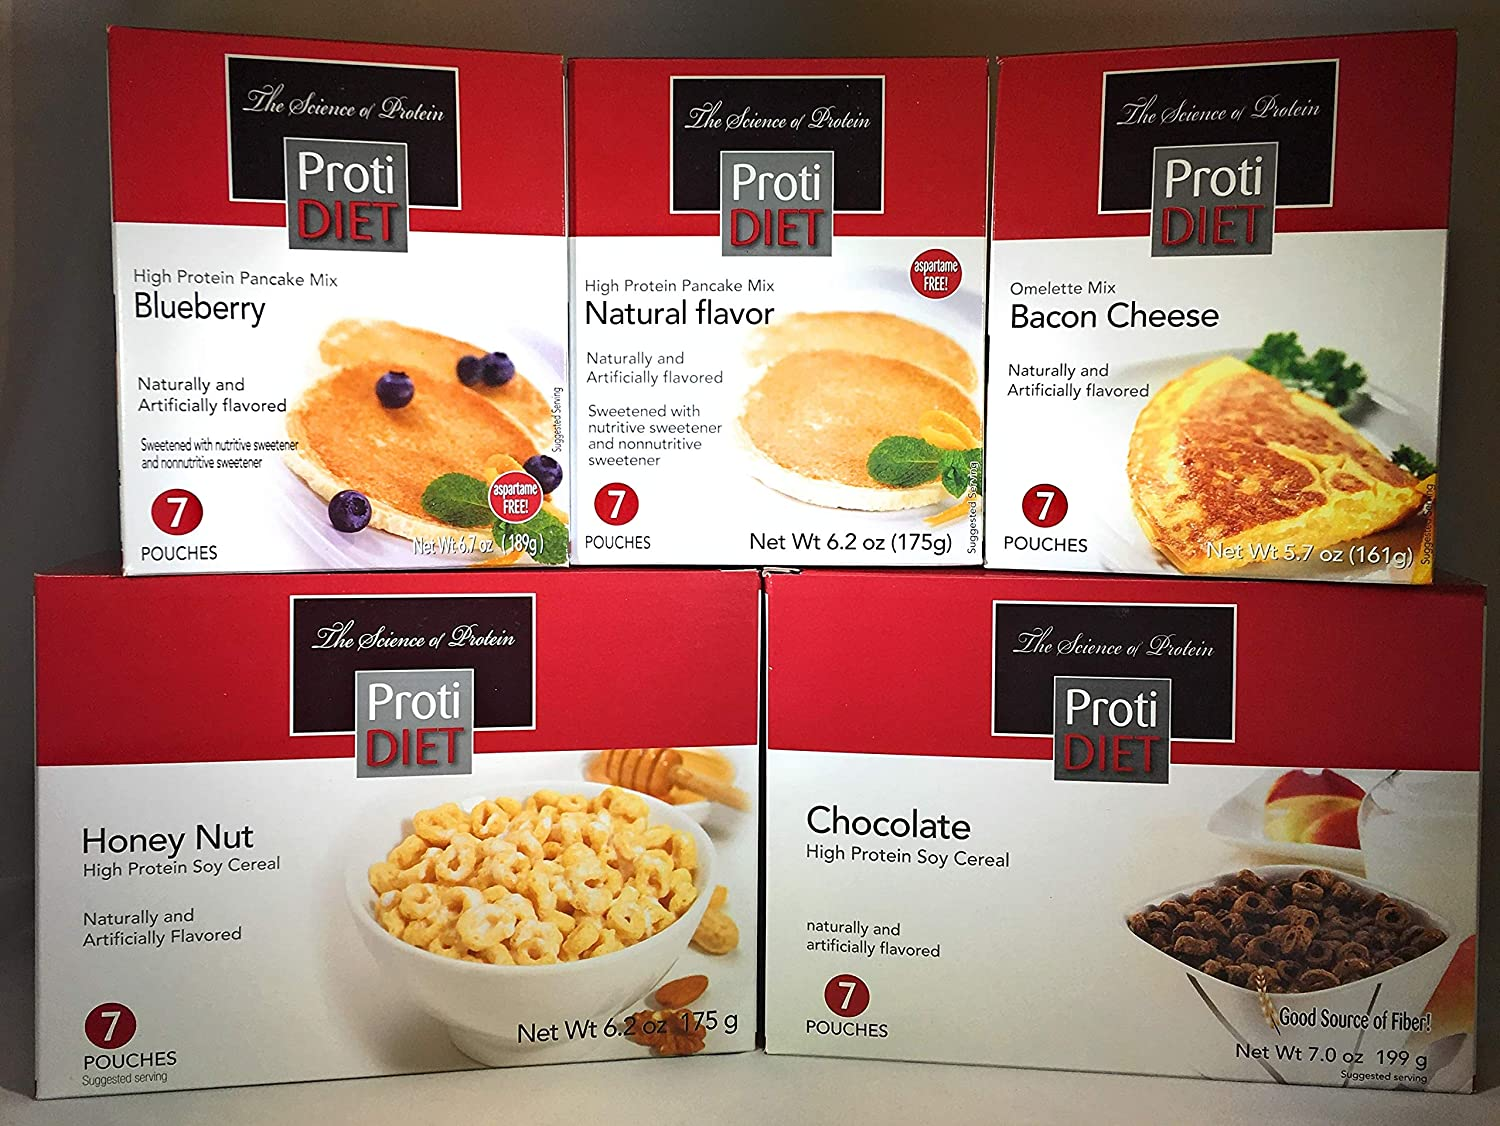 Proti Diet Max 43% OFF Breakfast Sampler by Being - 5 Well Choice Differ Essentials